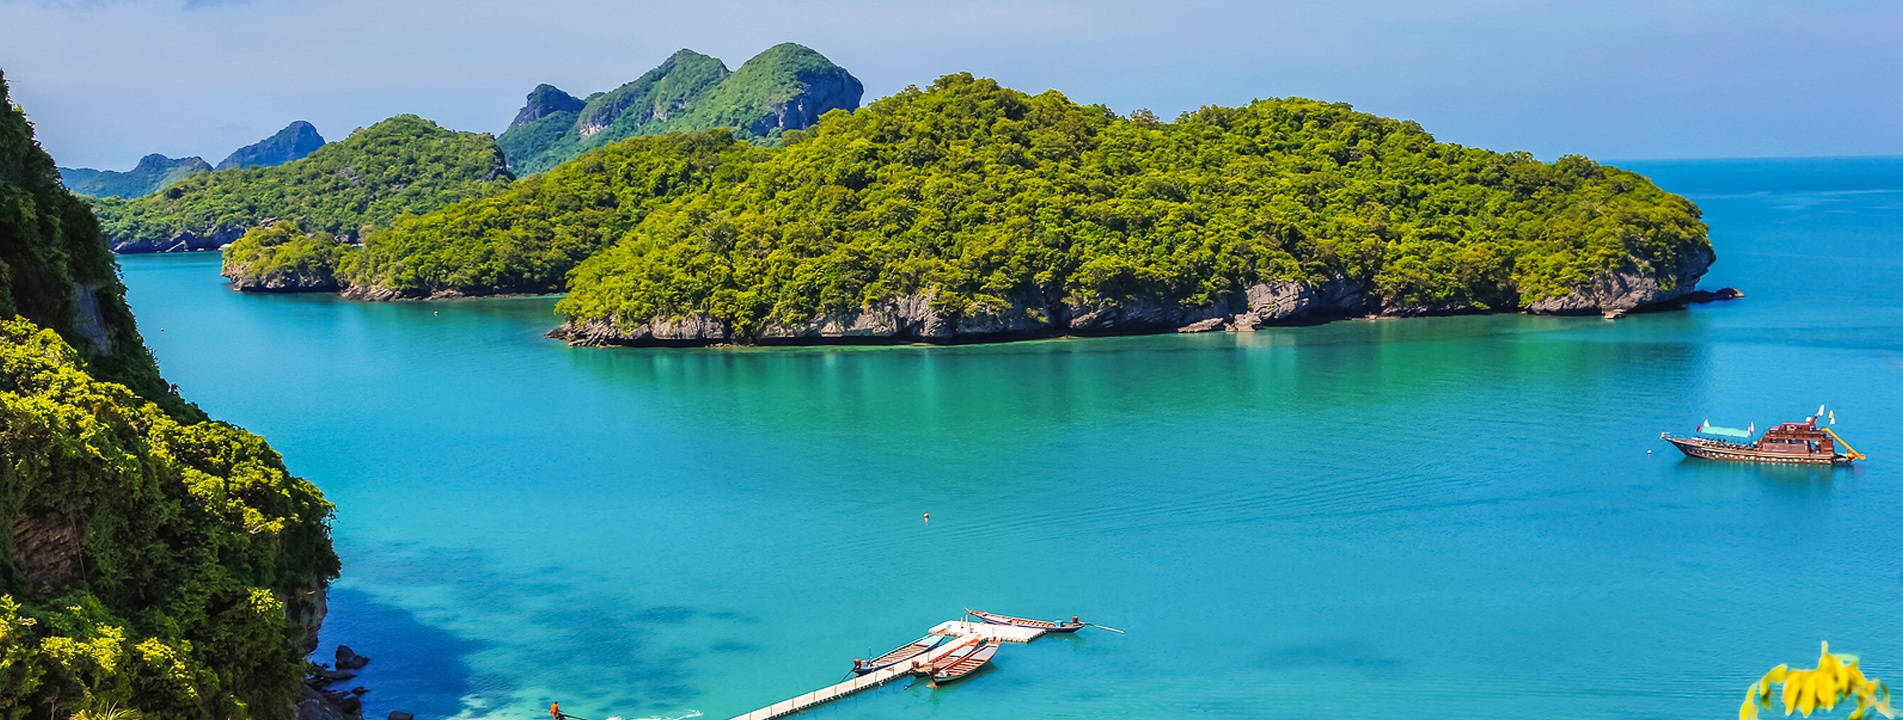 10-Day Best of Thailand with Koh Samui